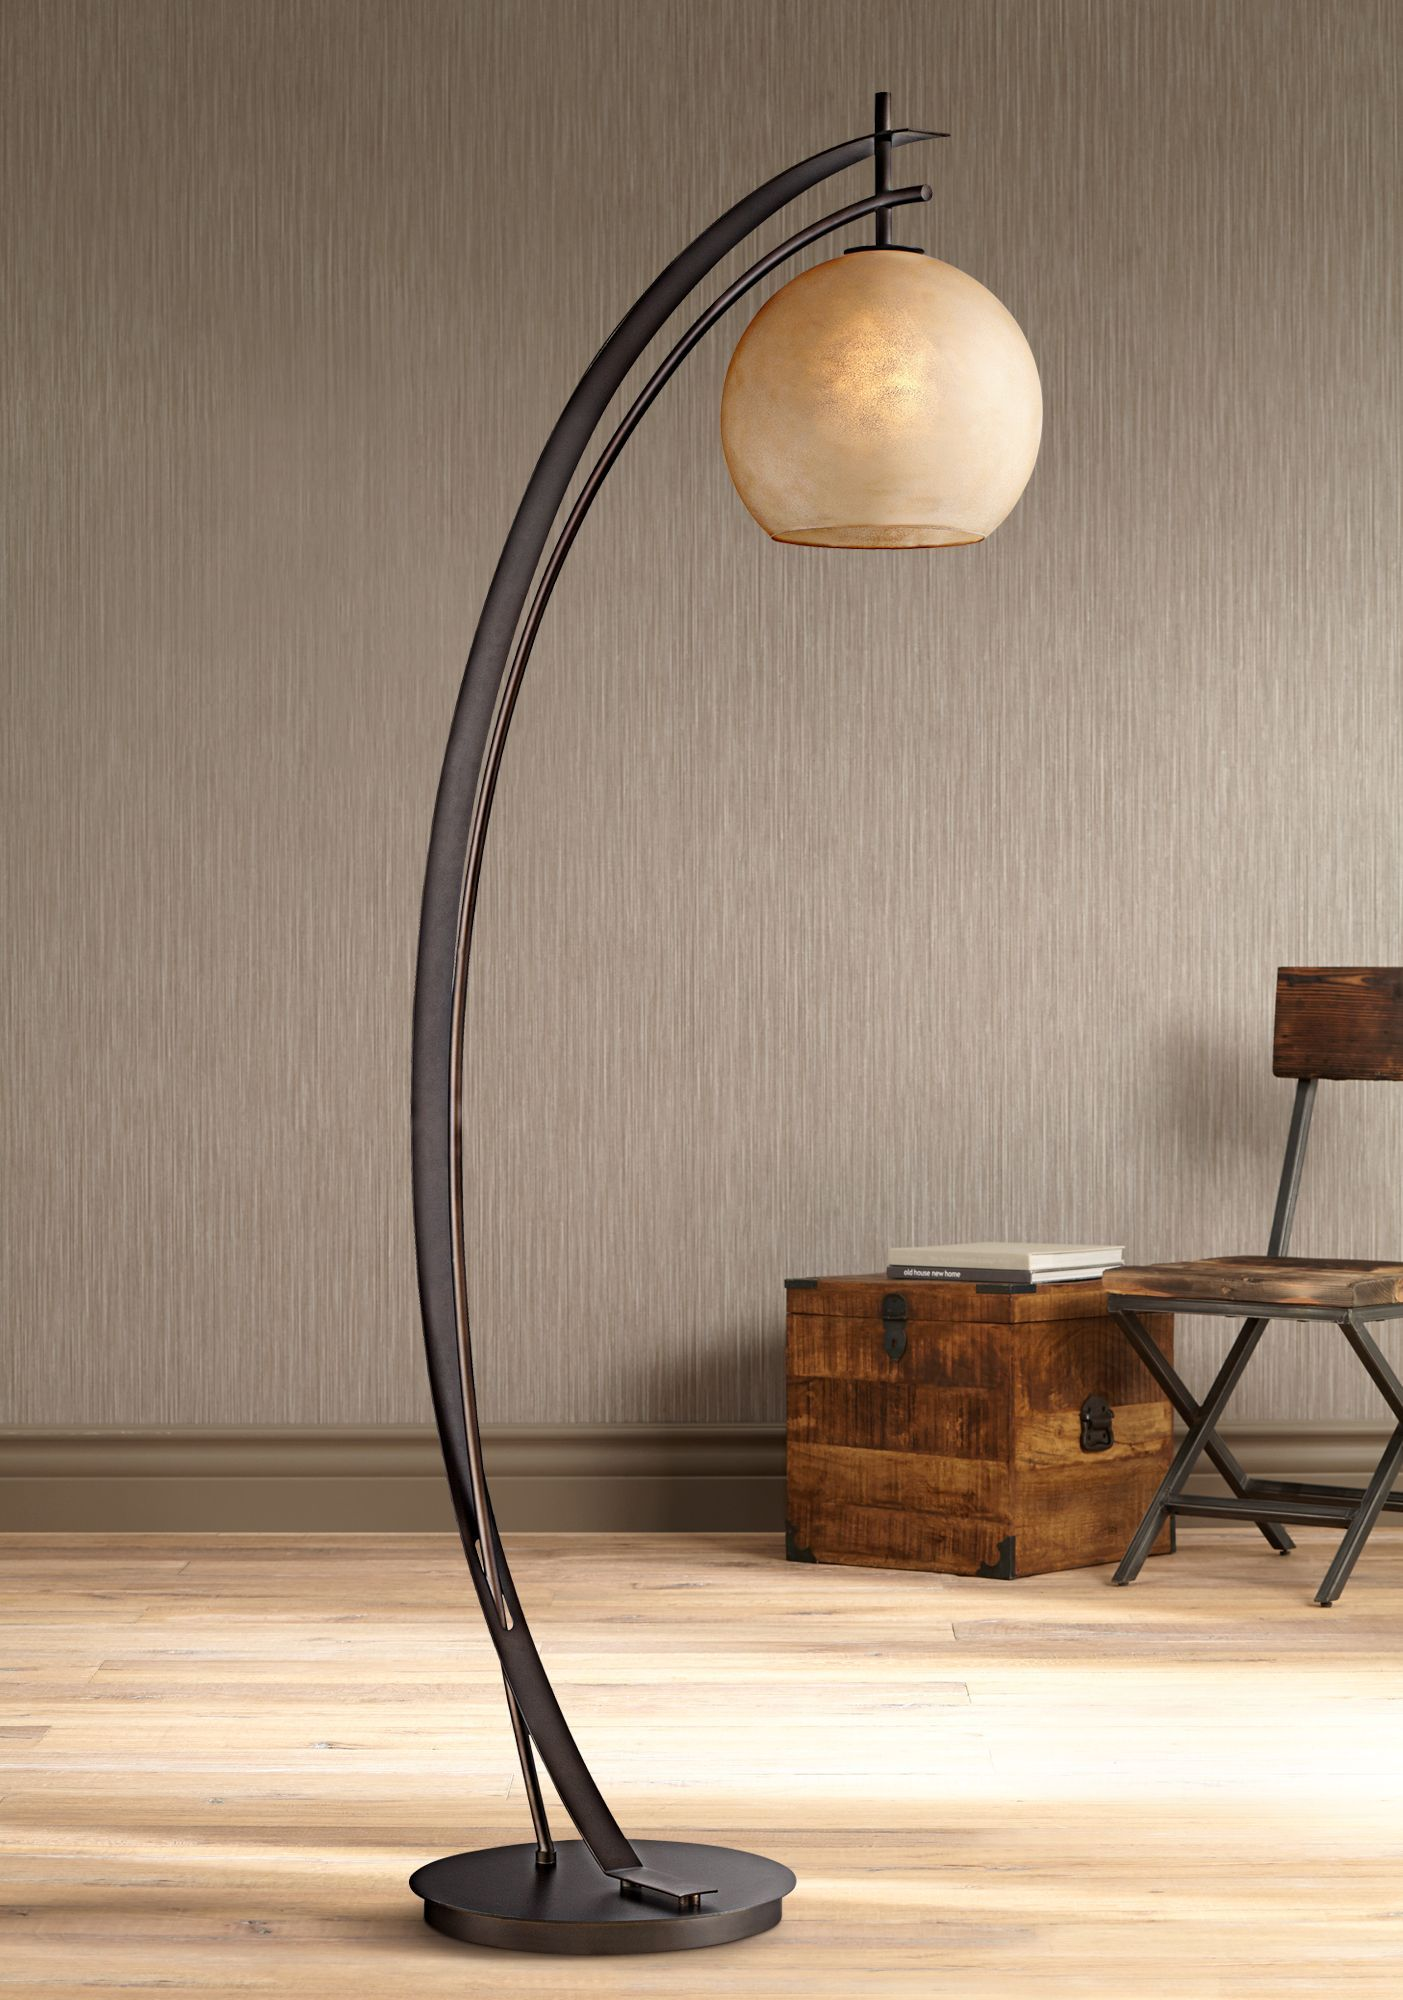 Modern Arc Floor Lamp Inside Stylish Lamps Design